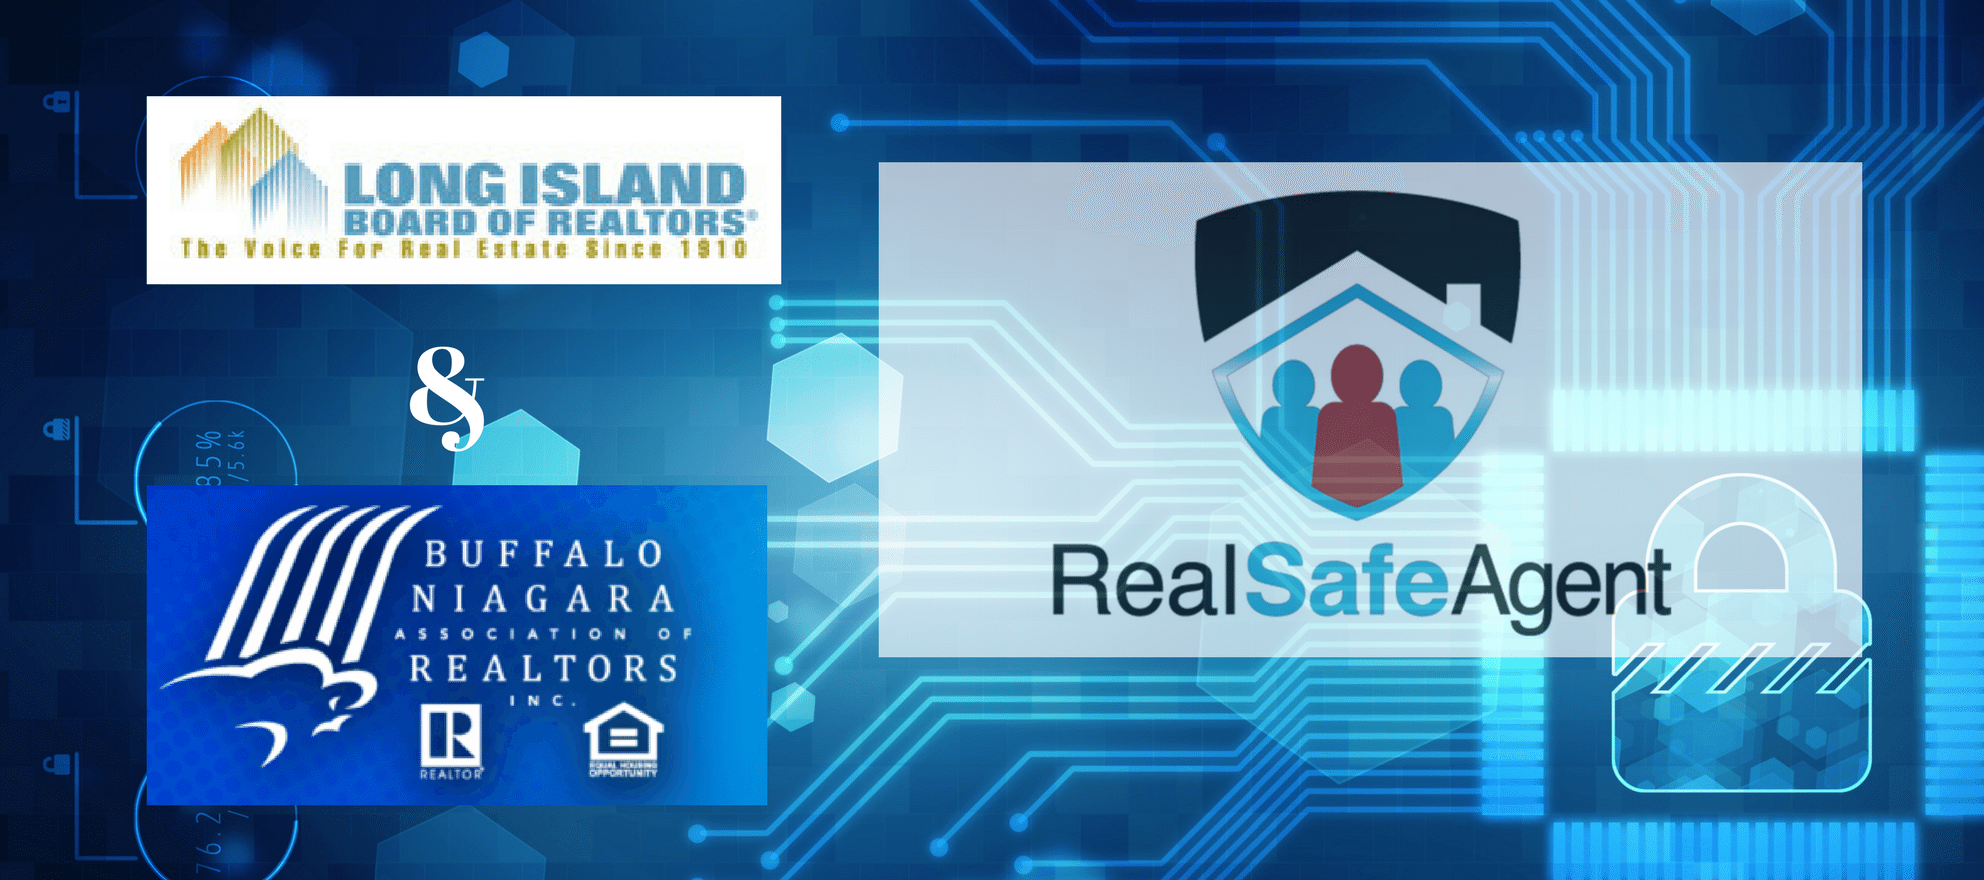 realtor associations using real safe agent